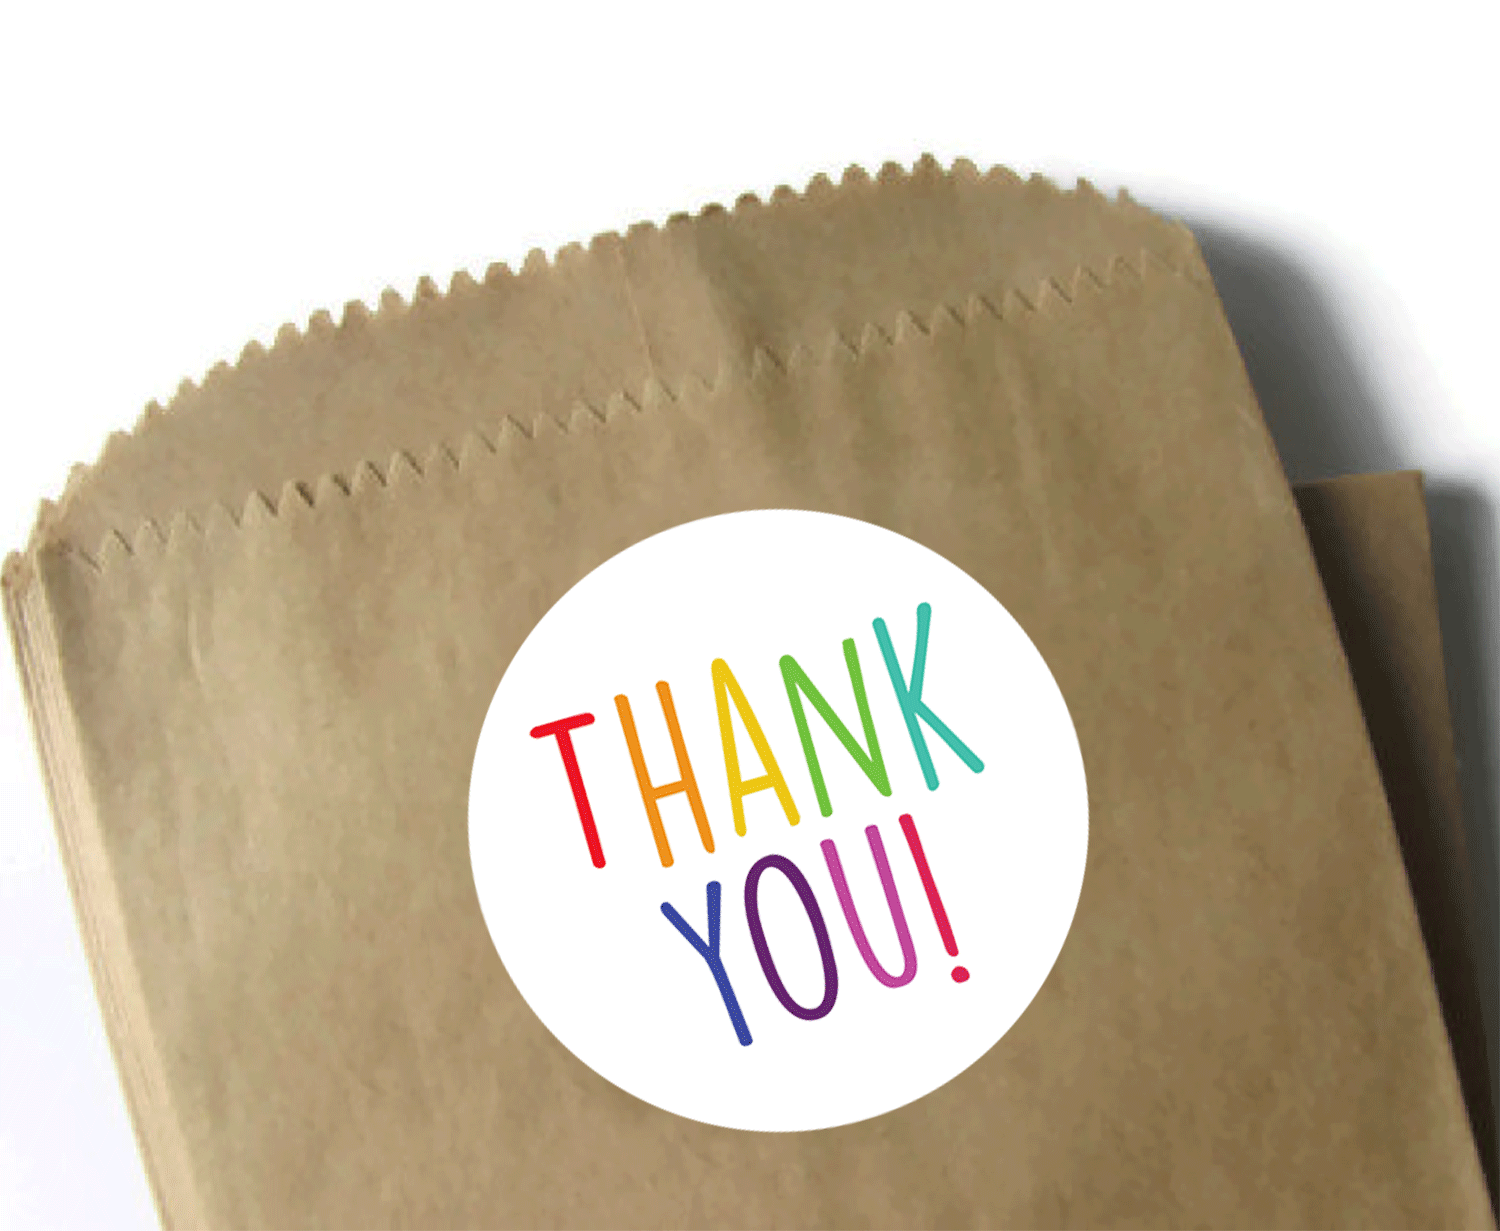 "3 Inch Round Thank You Stickers - Rainbow Thank You Stickers - 3"" Round Matte Label Paper - 6 Stickers Per Sheet"